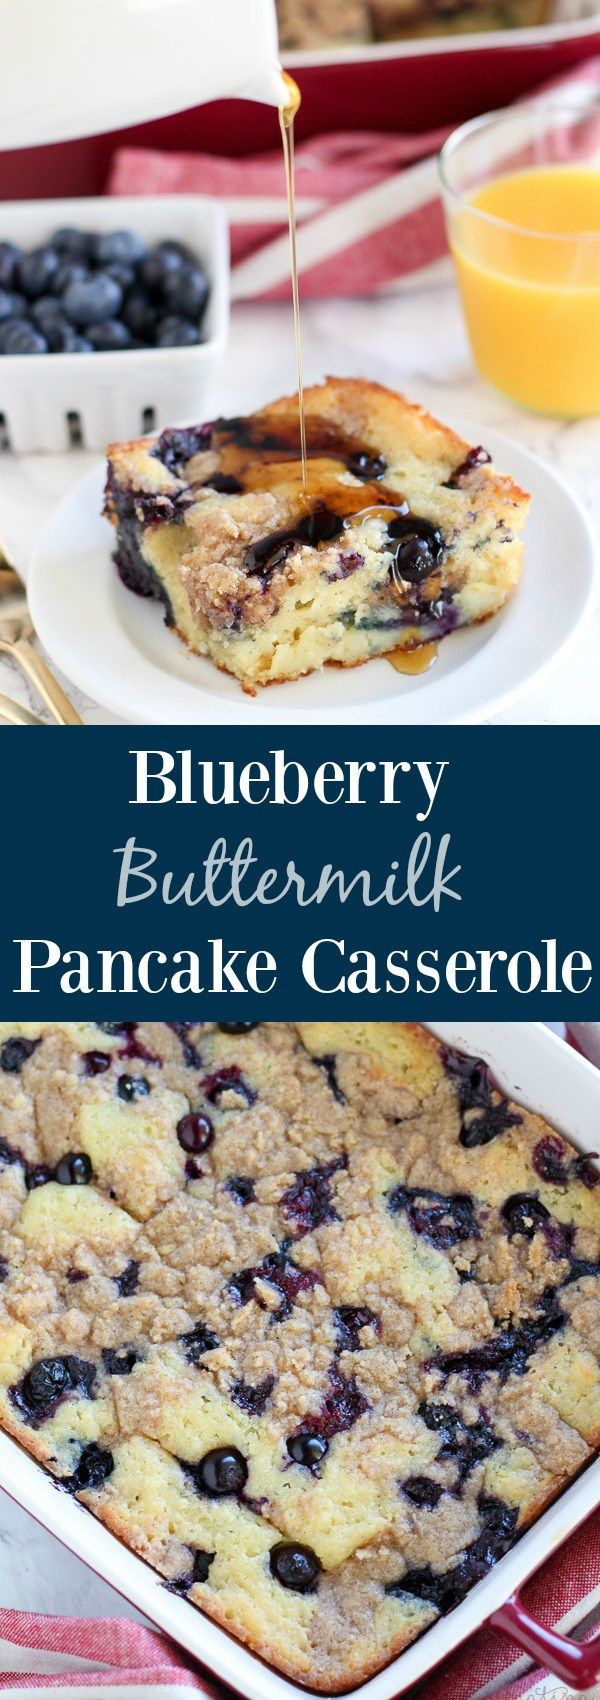 Blueberry Buttermilk Pancake Casserole - Celebrating Sweets